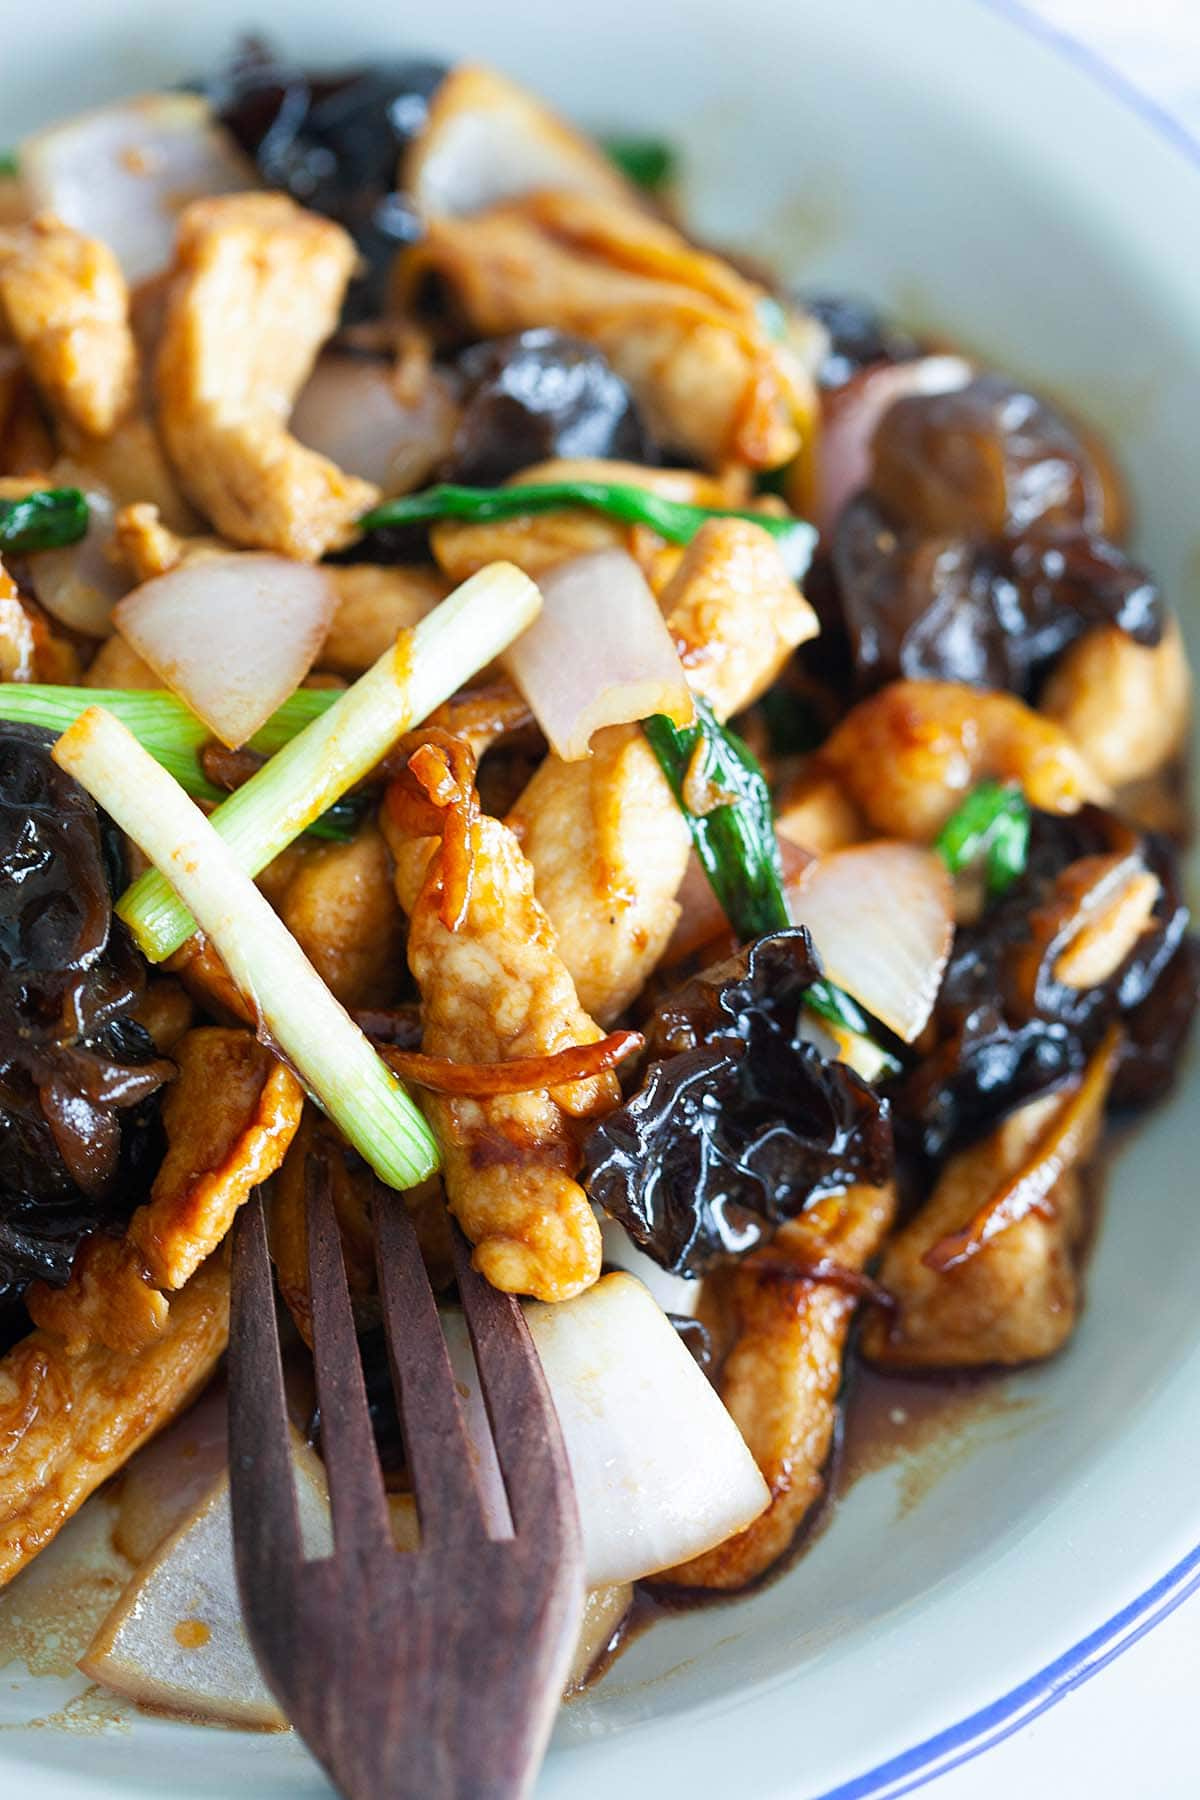 Stir fry chicken with black fungus and ginger.